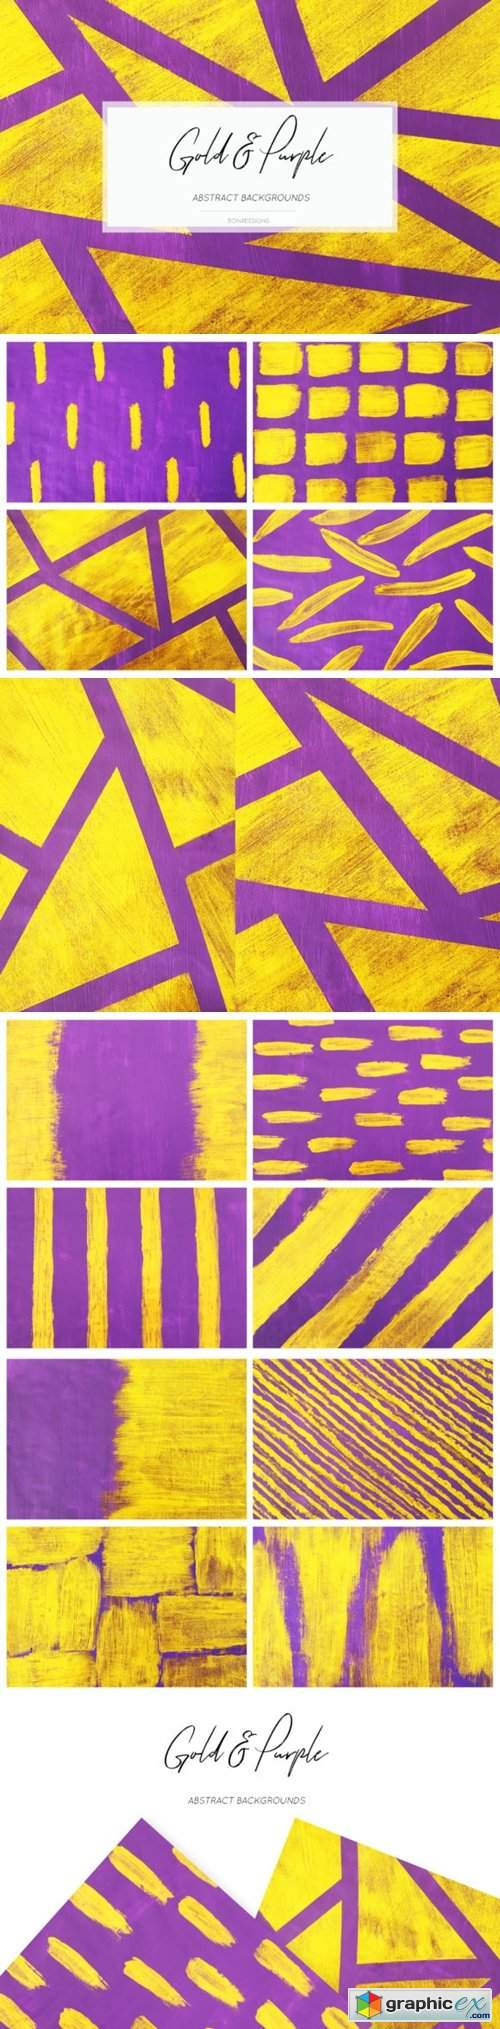 Gold Purple Backgrounds